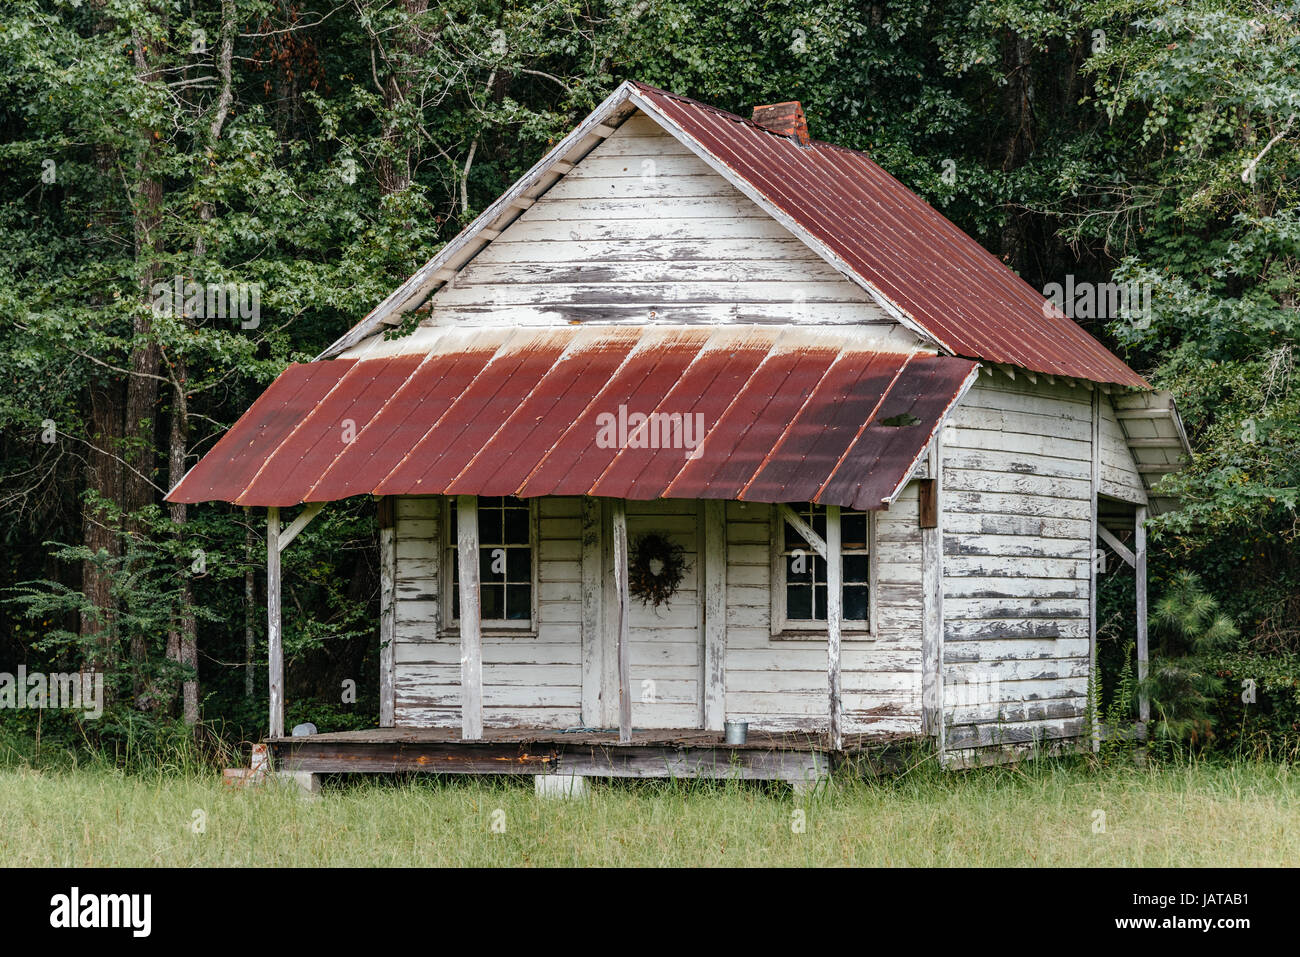 Old Abandoned Wooden Cabin With A Rusted Tin Roof In Rural Alabama, USA.